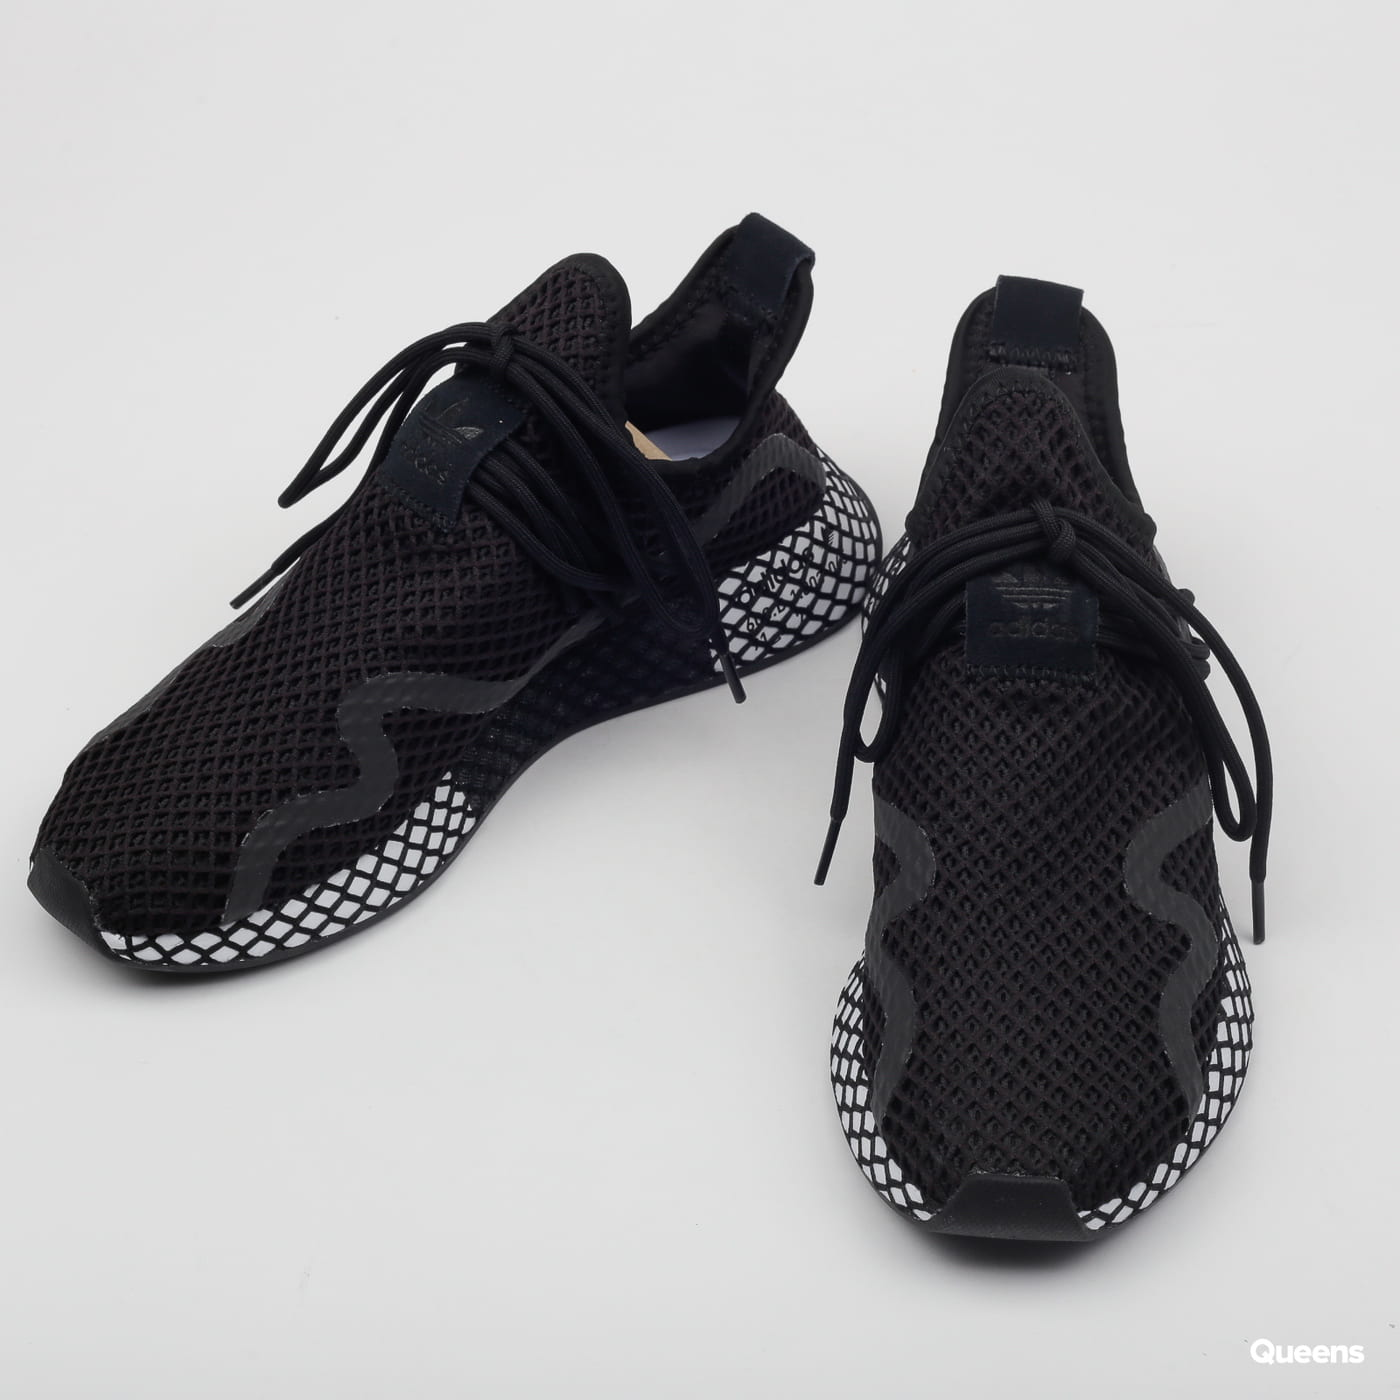 separation shoes 9be6c 31b6c Zoom in Zoom in Zoom in Zoom in Zoom in. adidas Originals Deerupt S ...